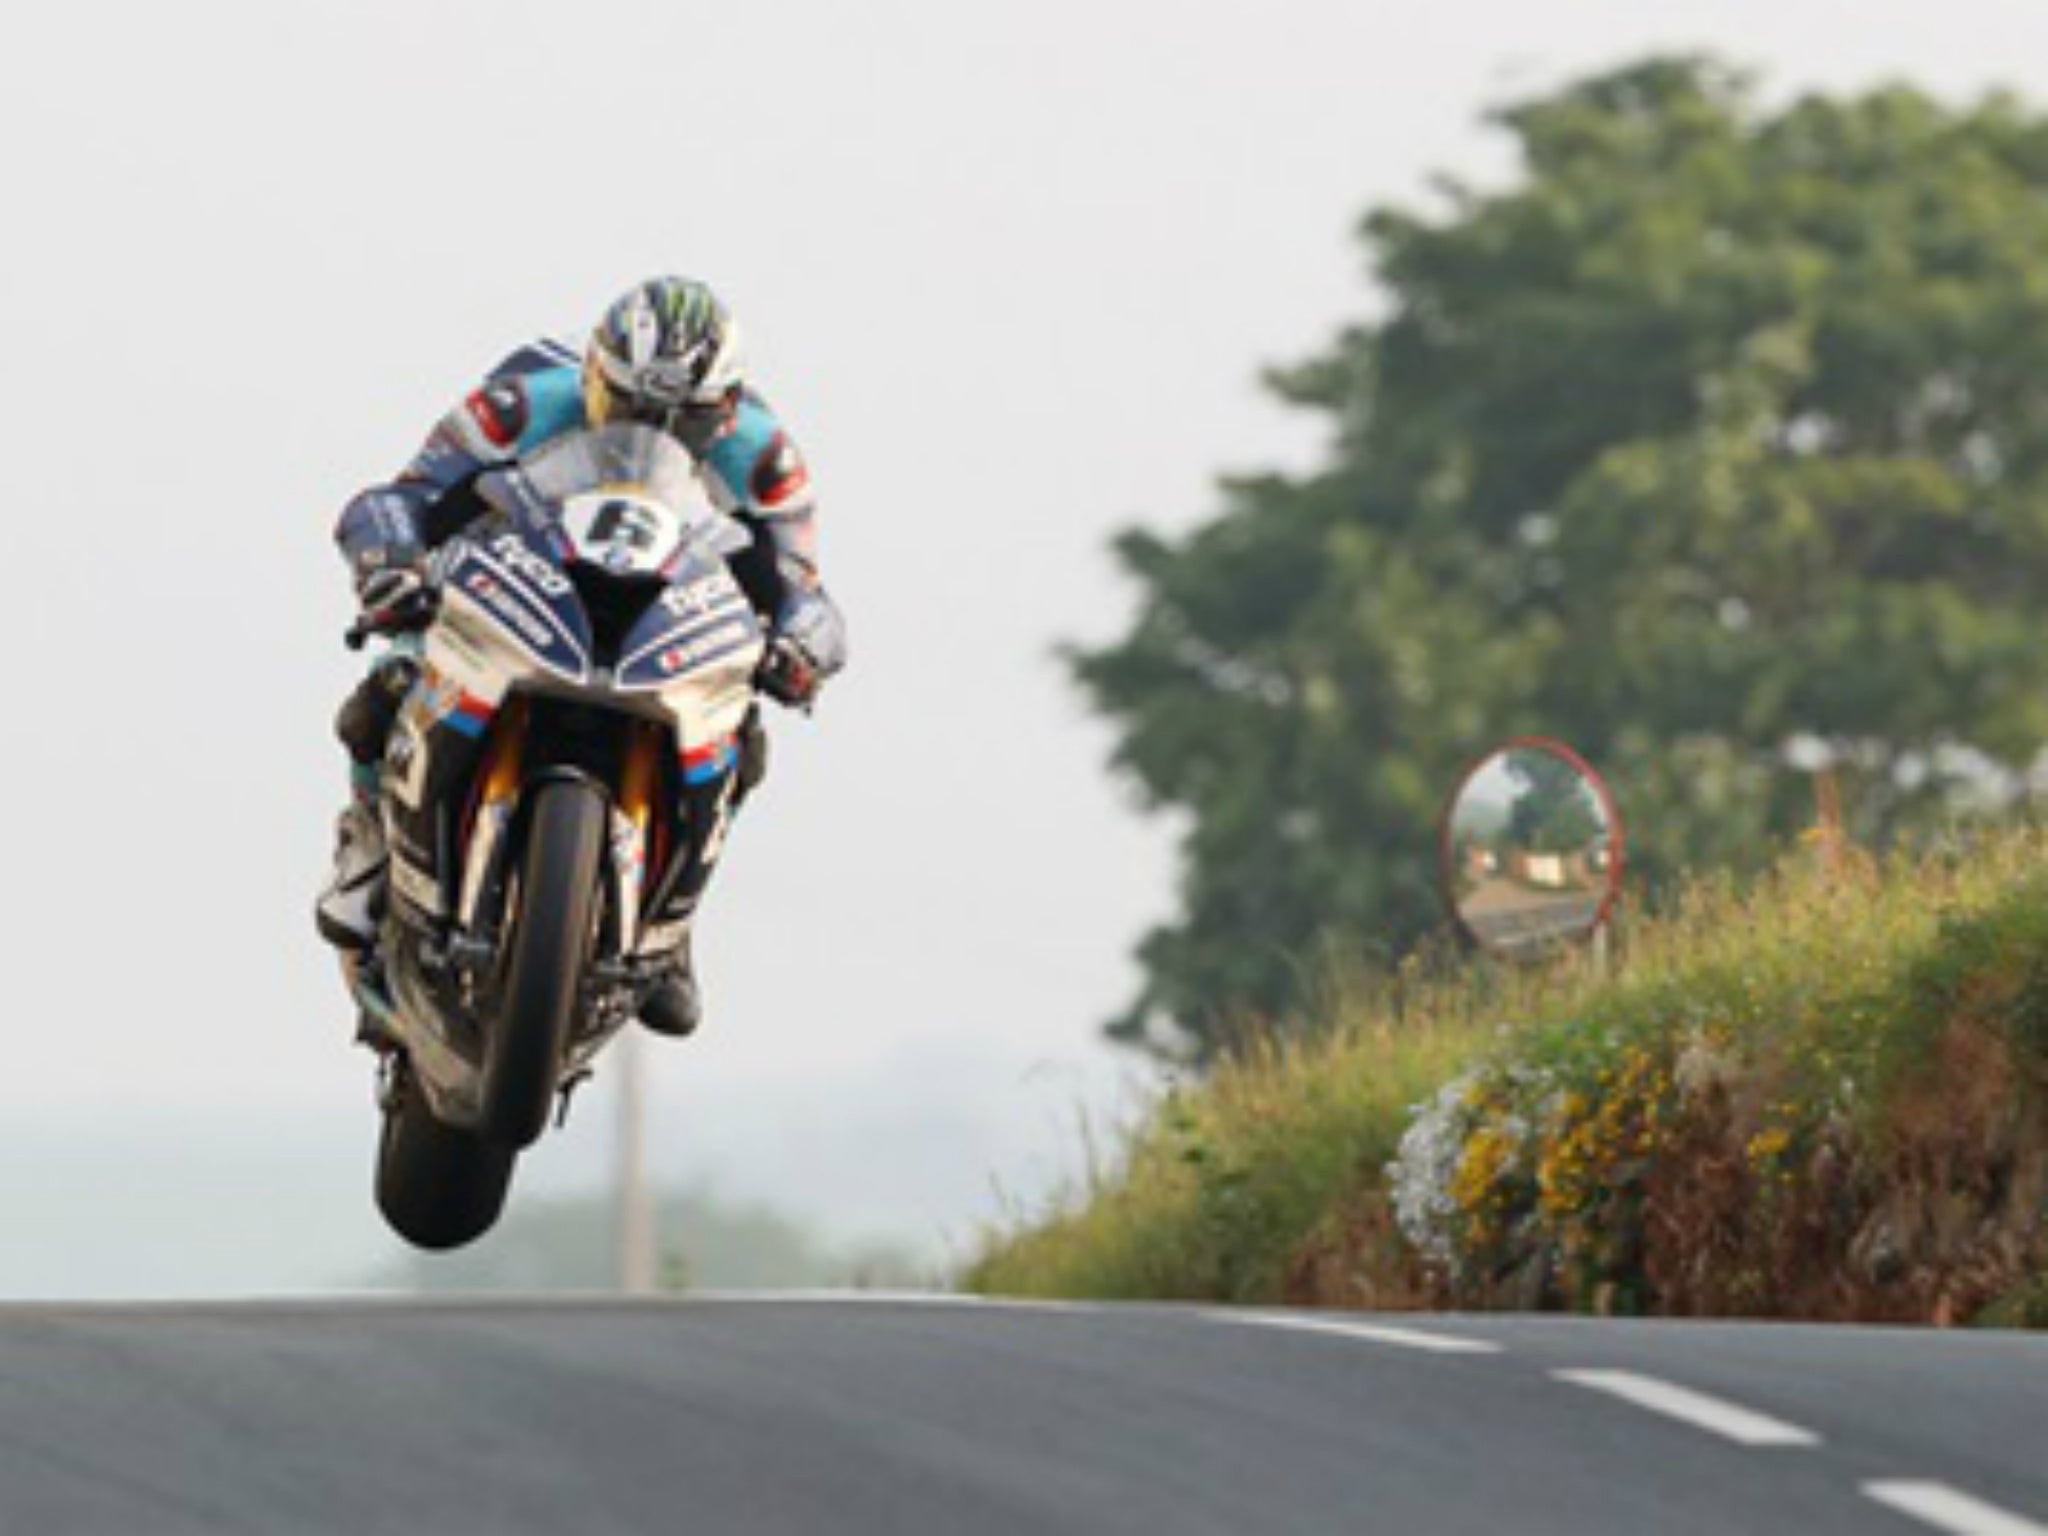 Tyco BMW - latest news, breaking stories and comment - The